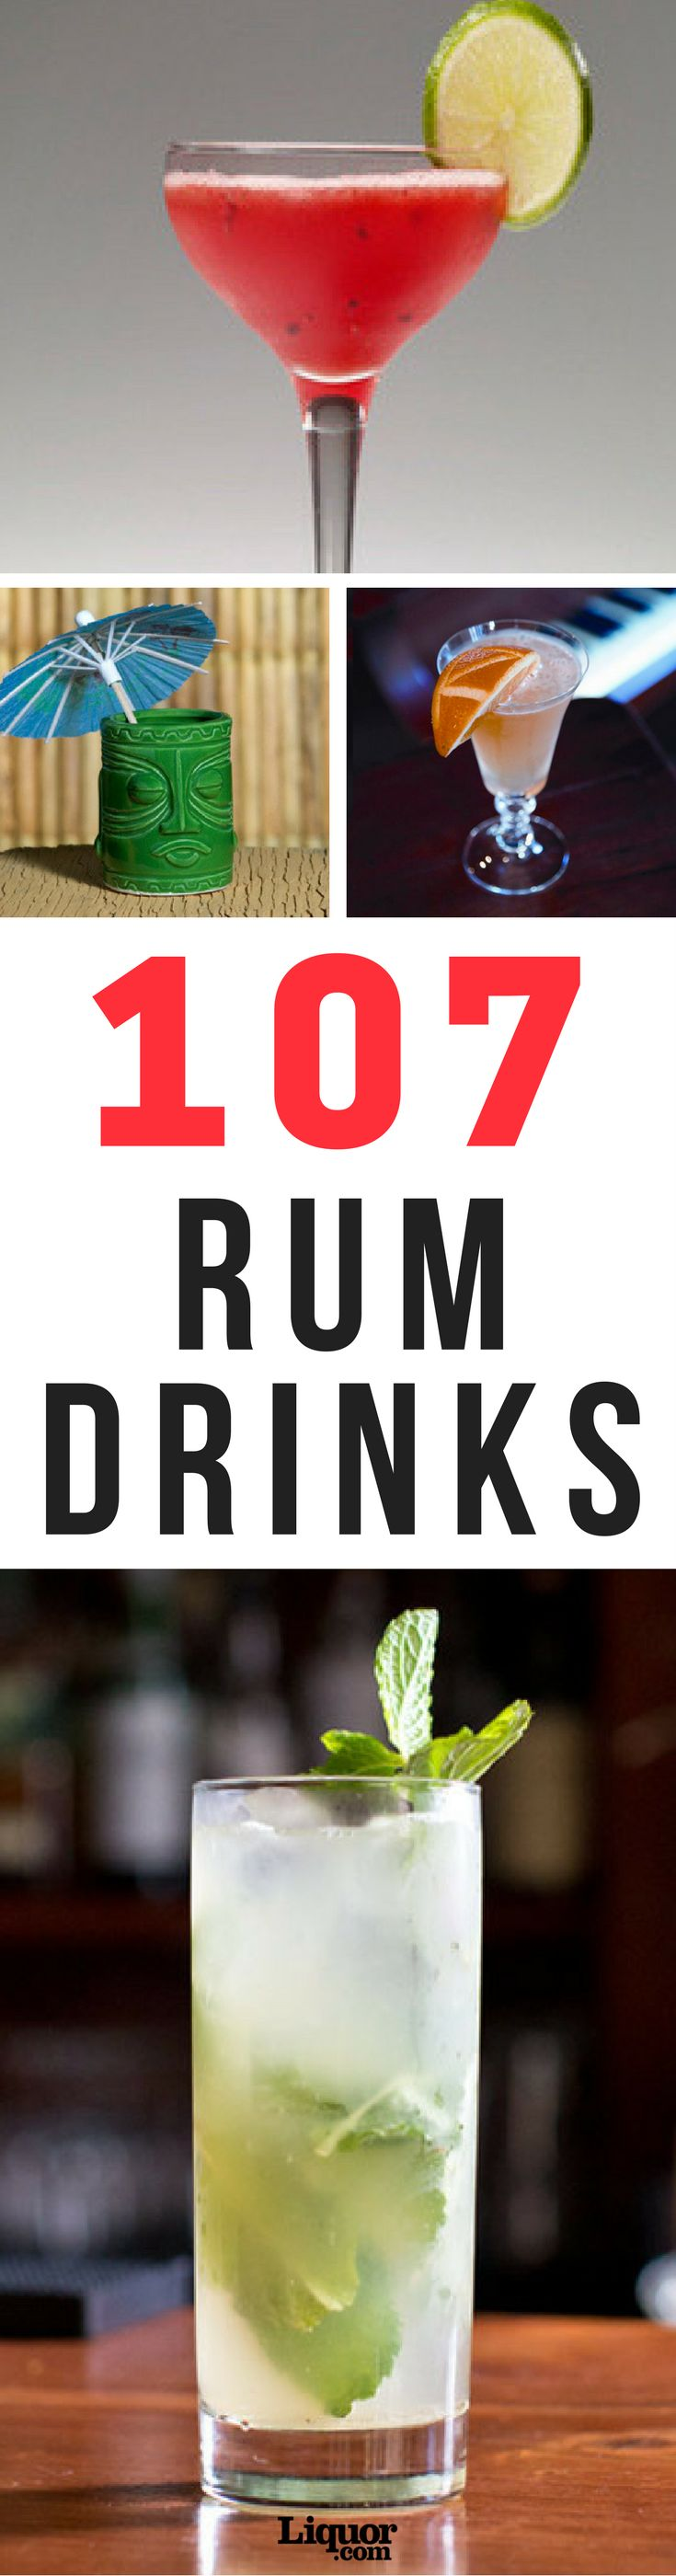 Wondering what to make when the rum isn't gone? Look no further. Click the link for all of the best rum cocktail recipes, perfect for any season or occasion. #Rum #Cocktails